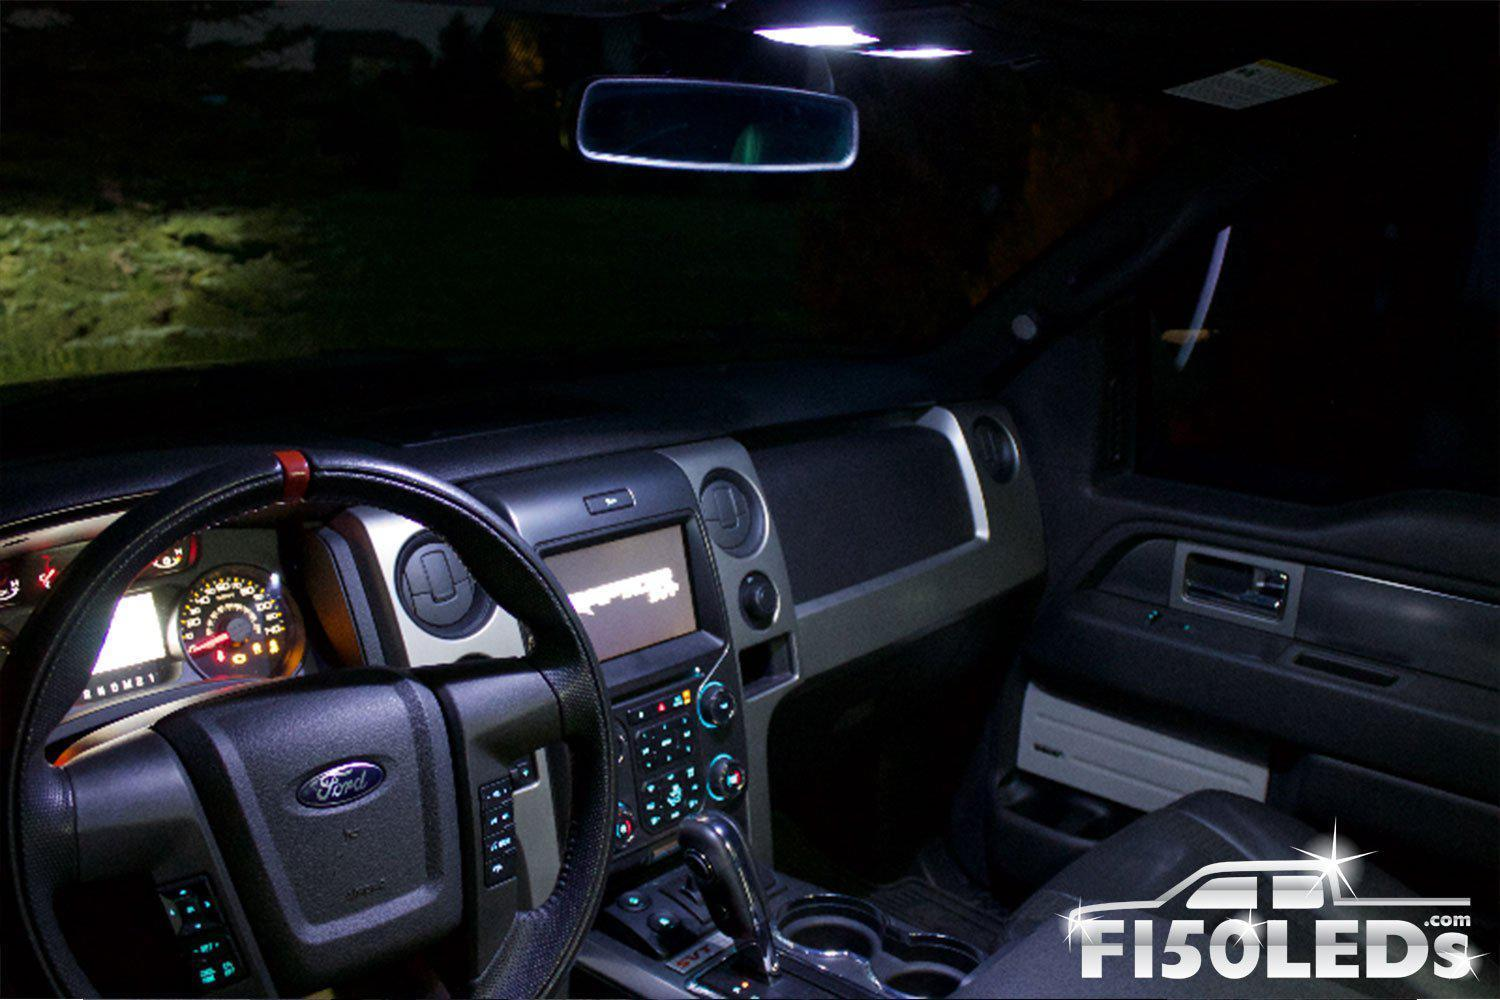 2010-14 F150 RAPTOR LEDS Front Interior Light Kit-2010-14 F150 RAPTOR LEDS-F150LEDs.com